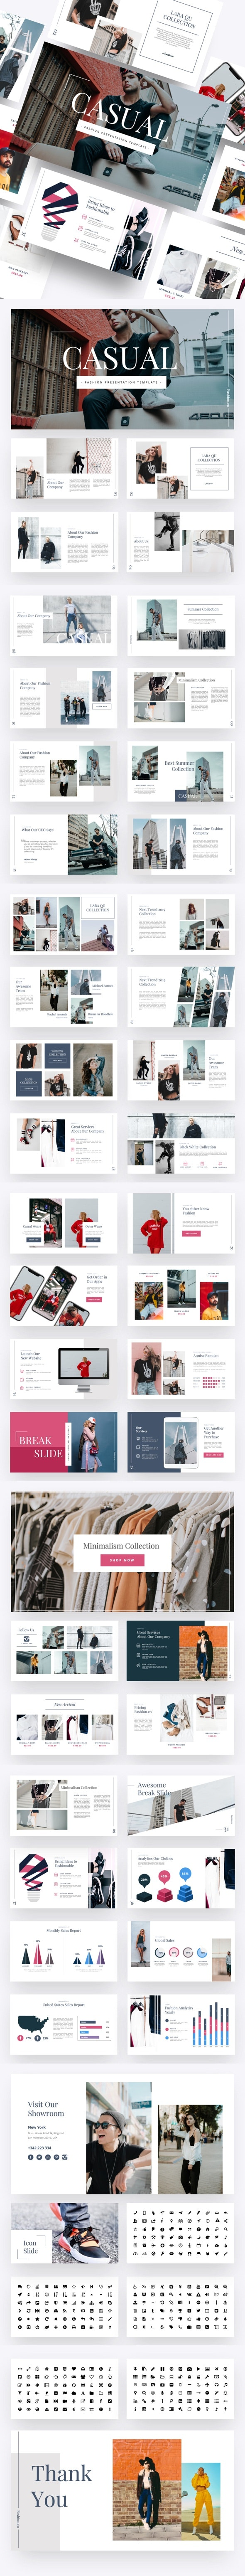 Casual - Fashion Powerpoint Template - Creative PowerPoint Templates